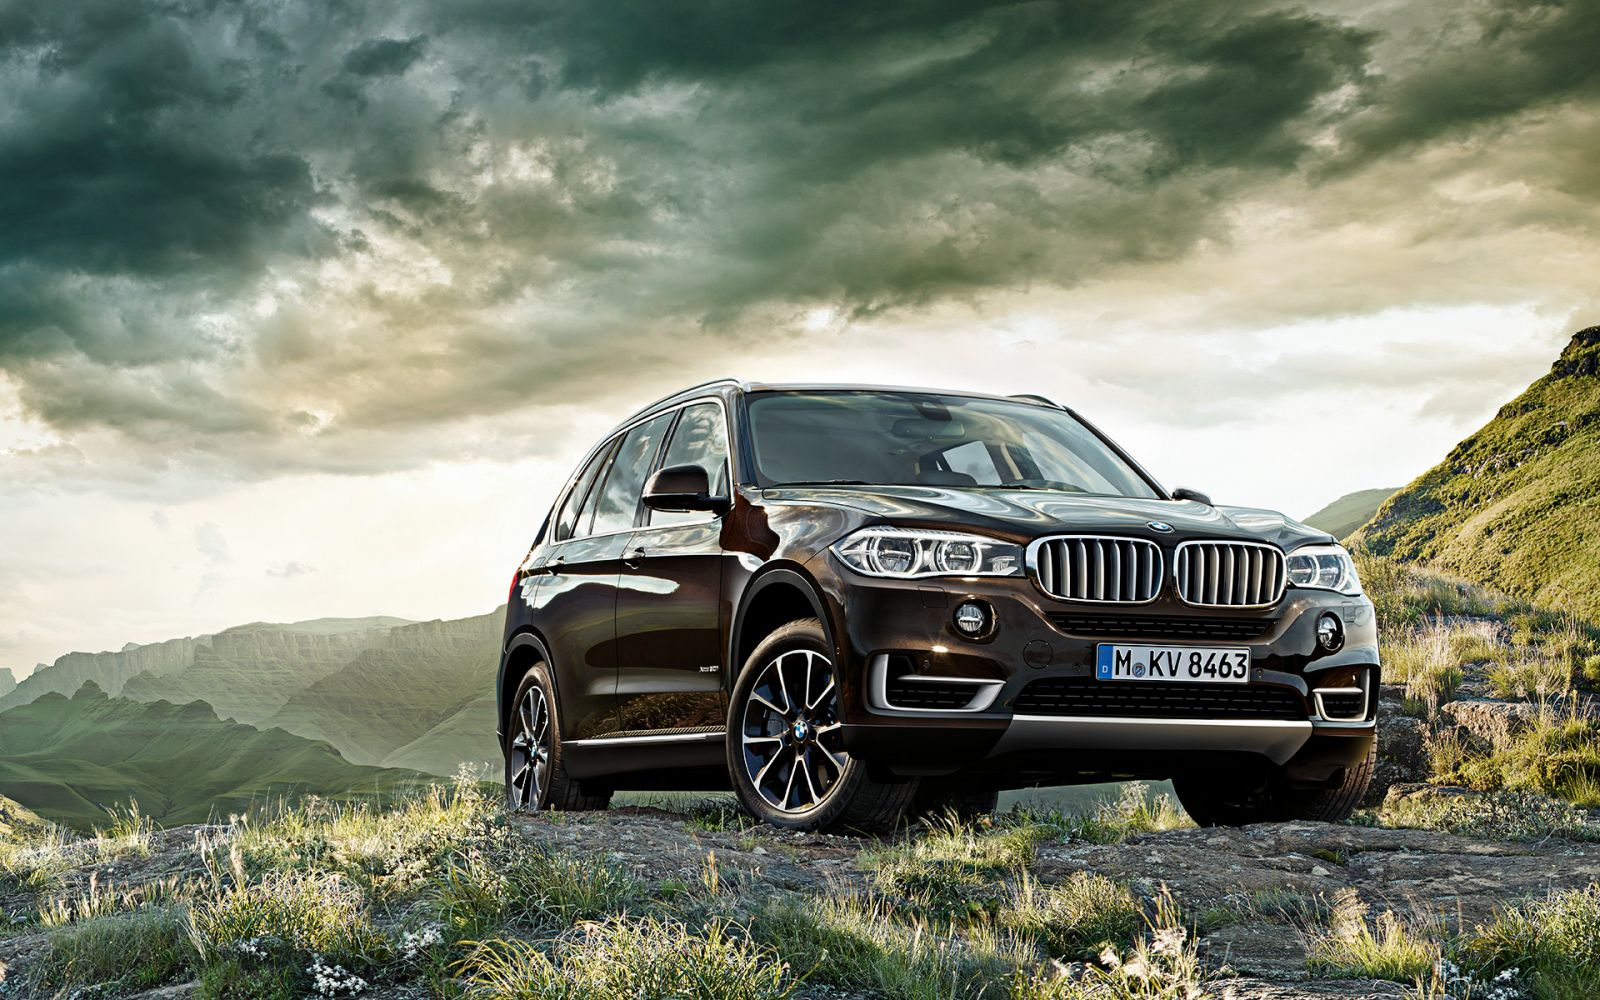 BMW Manufacturing Co. reported the X5 its most produced vehicle in 2016 with 165,377 made during the year. The Spartanburg facility produced over 400,000 vehicles for the second straight year. (Photo provided)